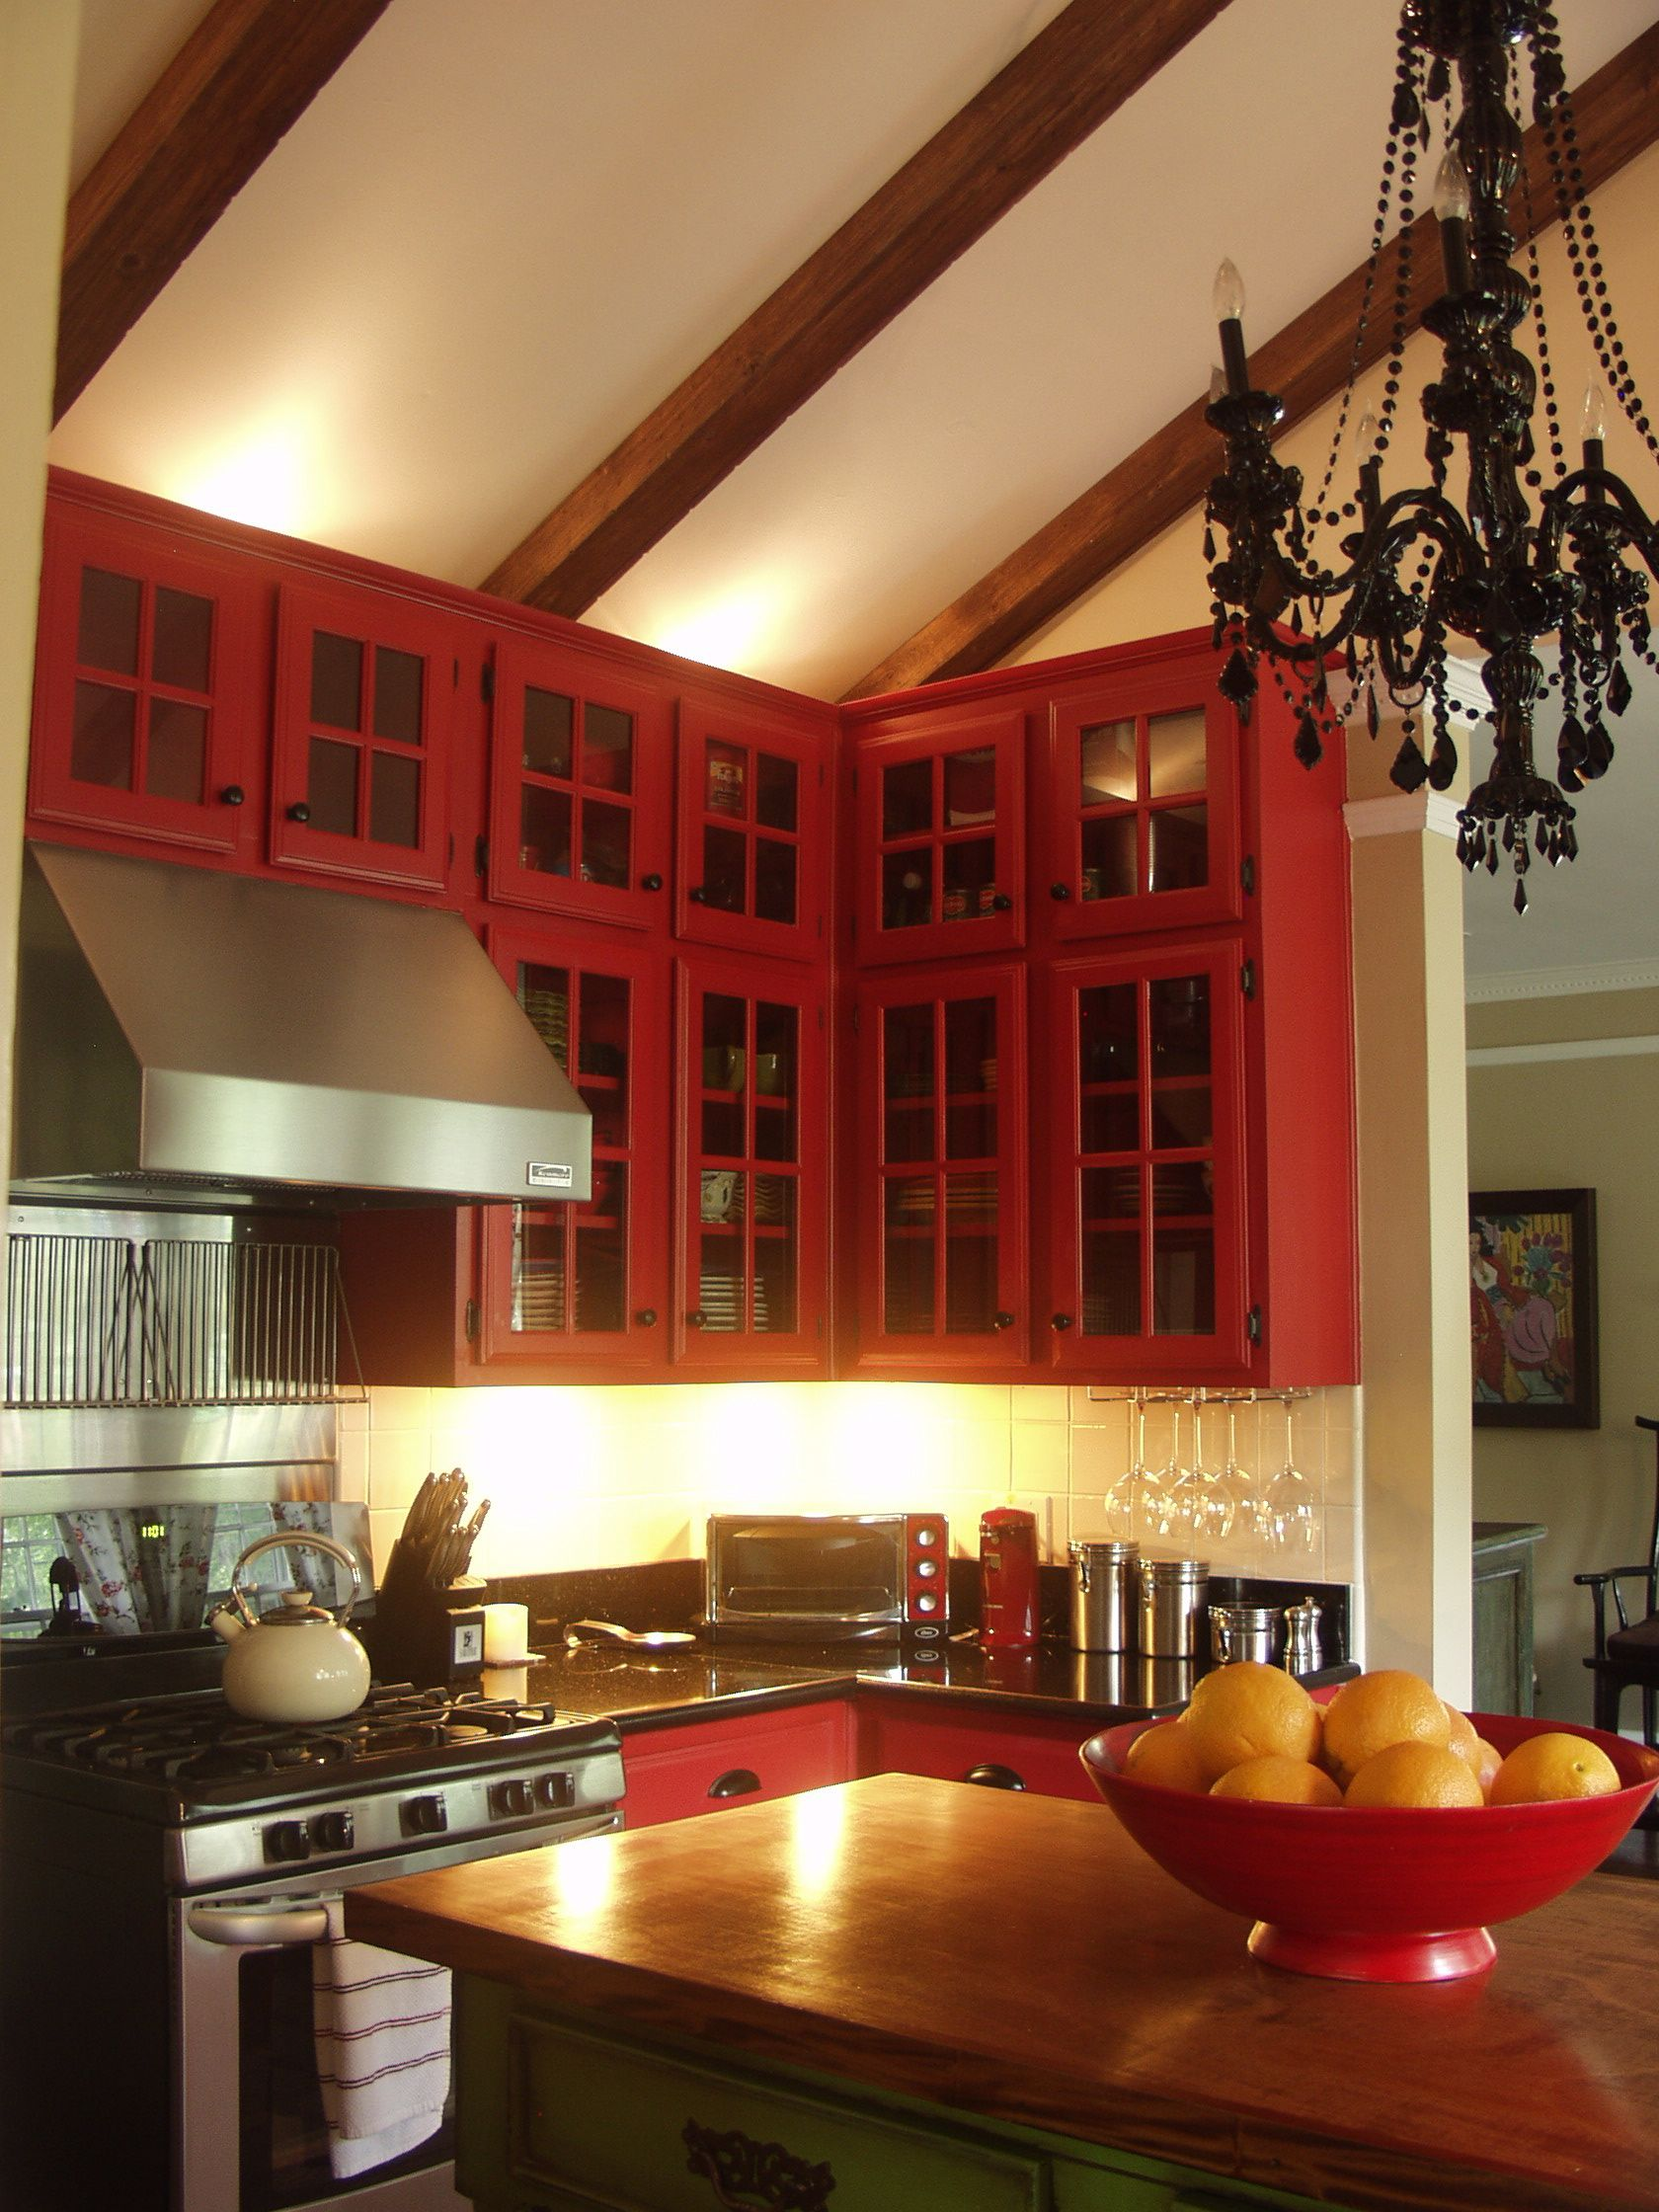 Red Cabinets, Black Chandelier Perfect Kitchen Yes Use A Chandelier